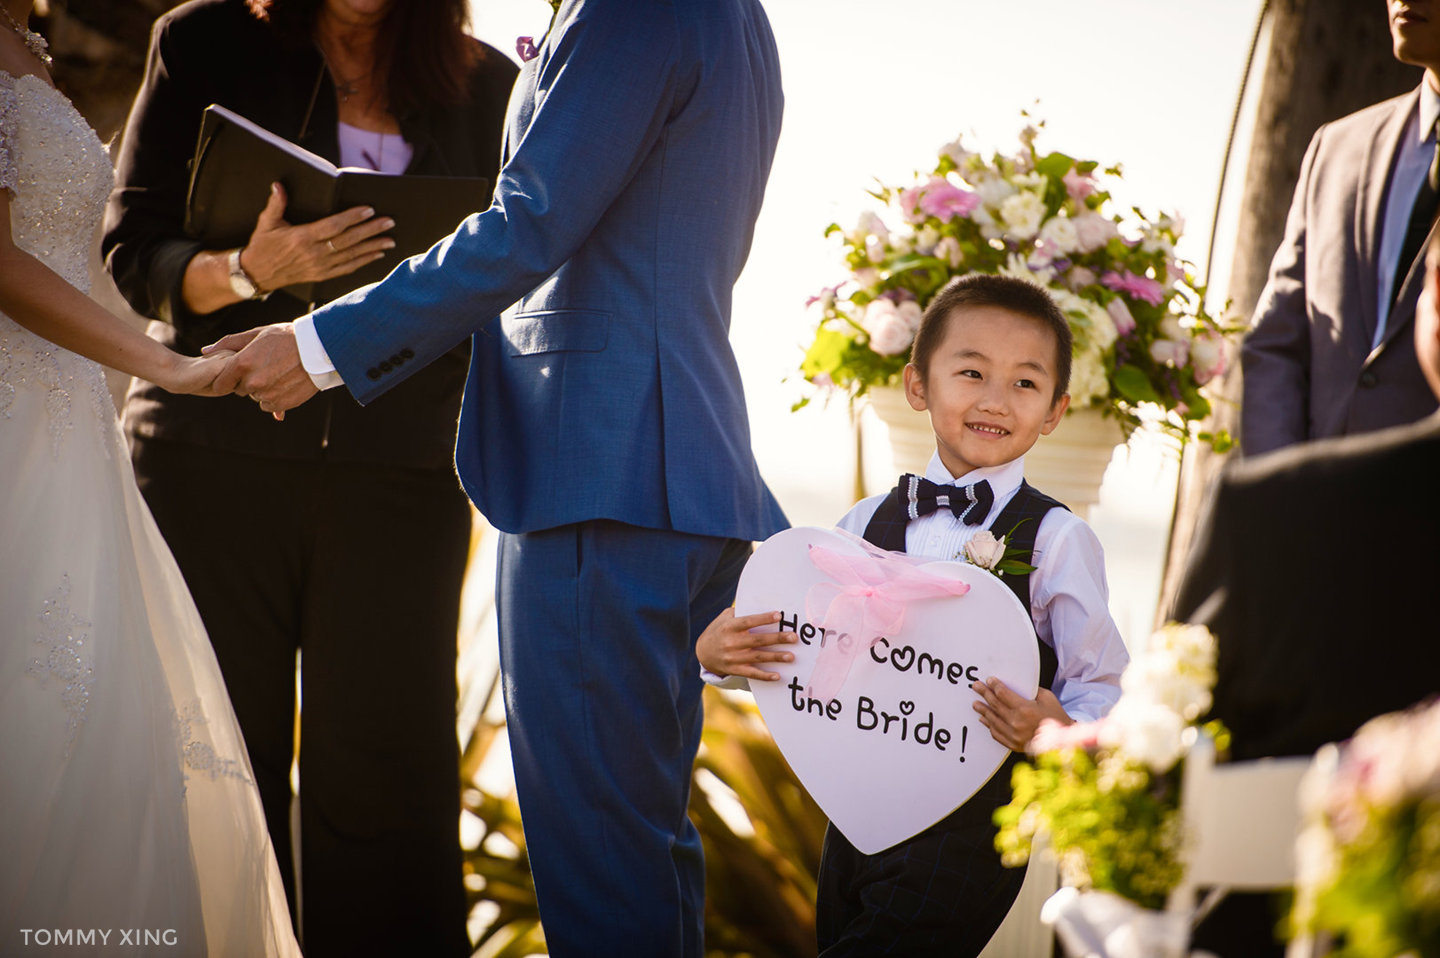 Paradise Point Resort Wedding Xiaolu & Bin San Diego 圣地亚哥婚礼摄影跟拍 Tommy Xing Photography 洛杉矶婚礼婚纱照摄影师 119.jpg